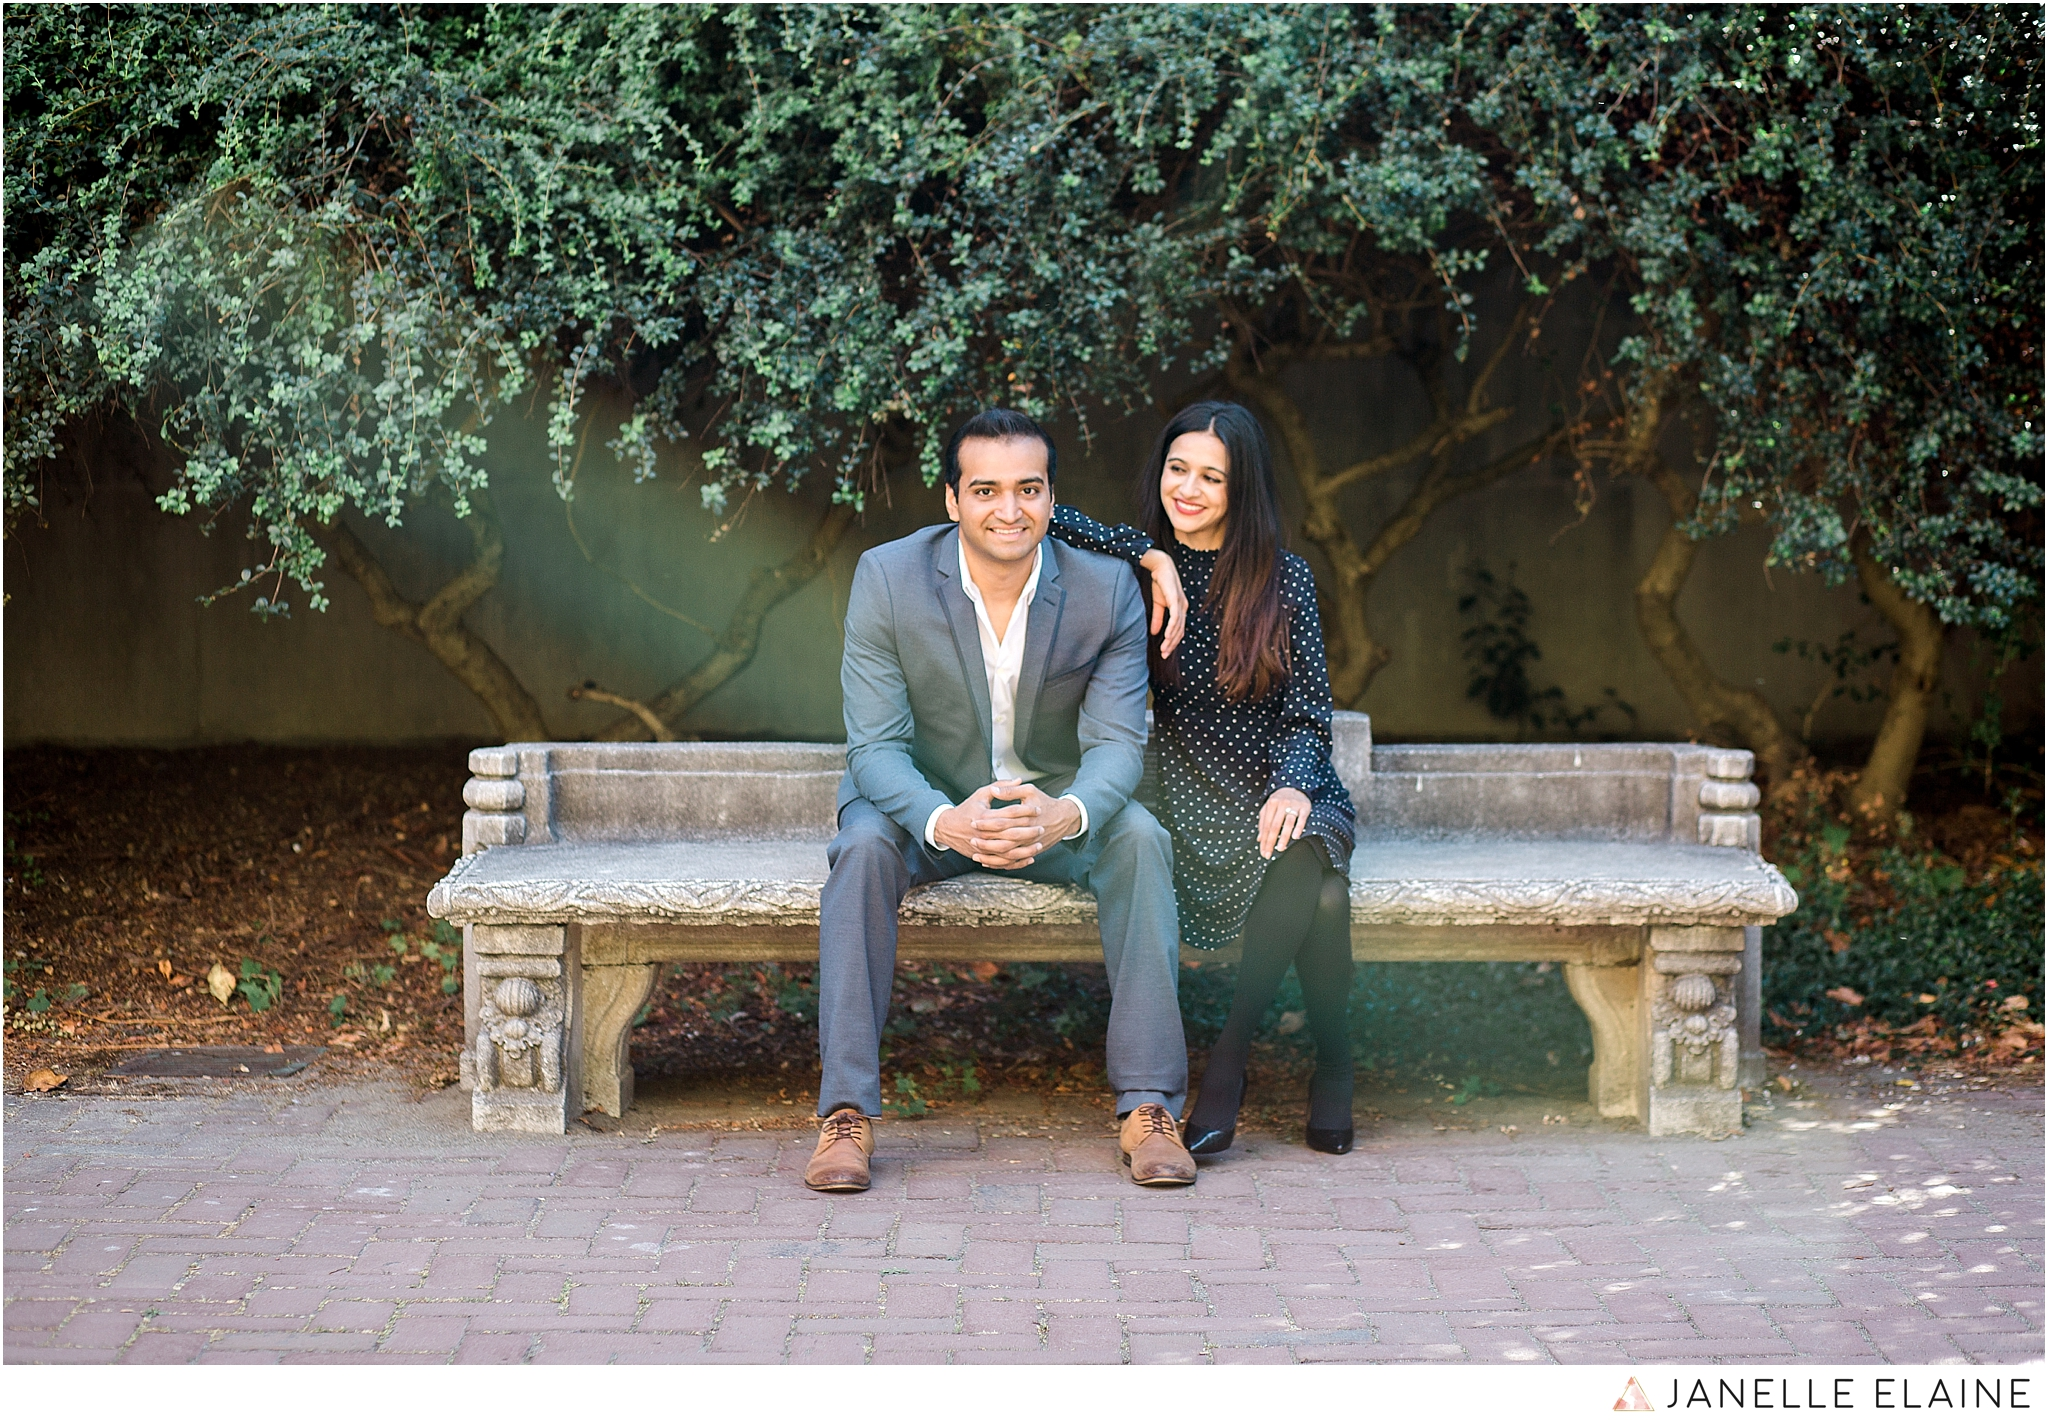 janelle elaine photography-zain and umema-seattle-uw-red square-engagement-photographer-78.jpg